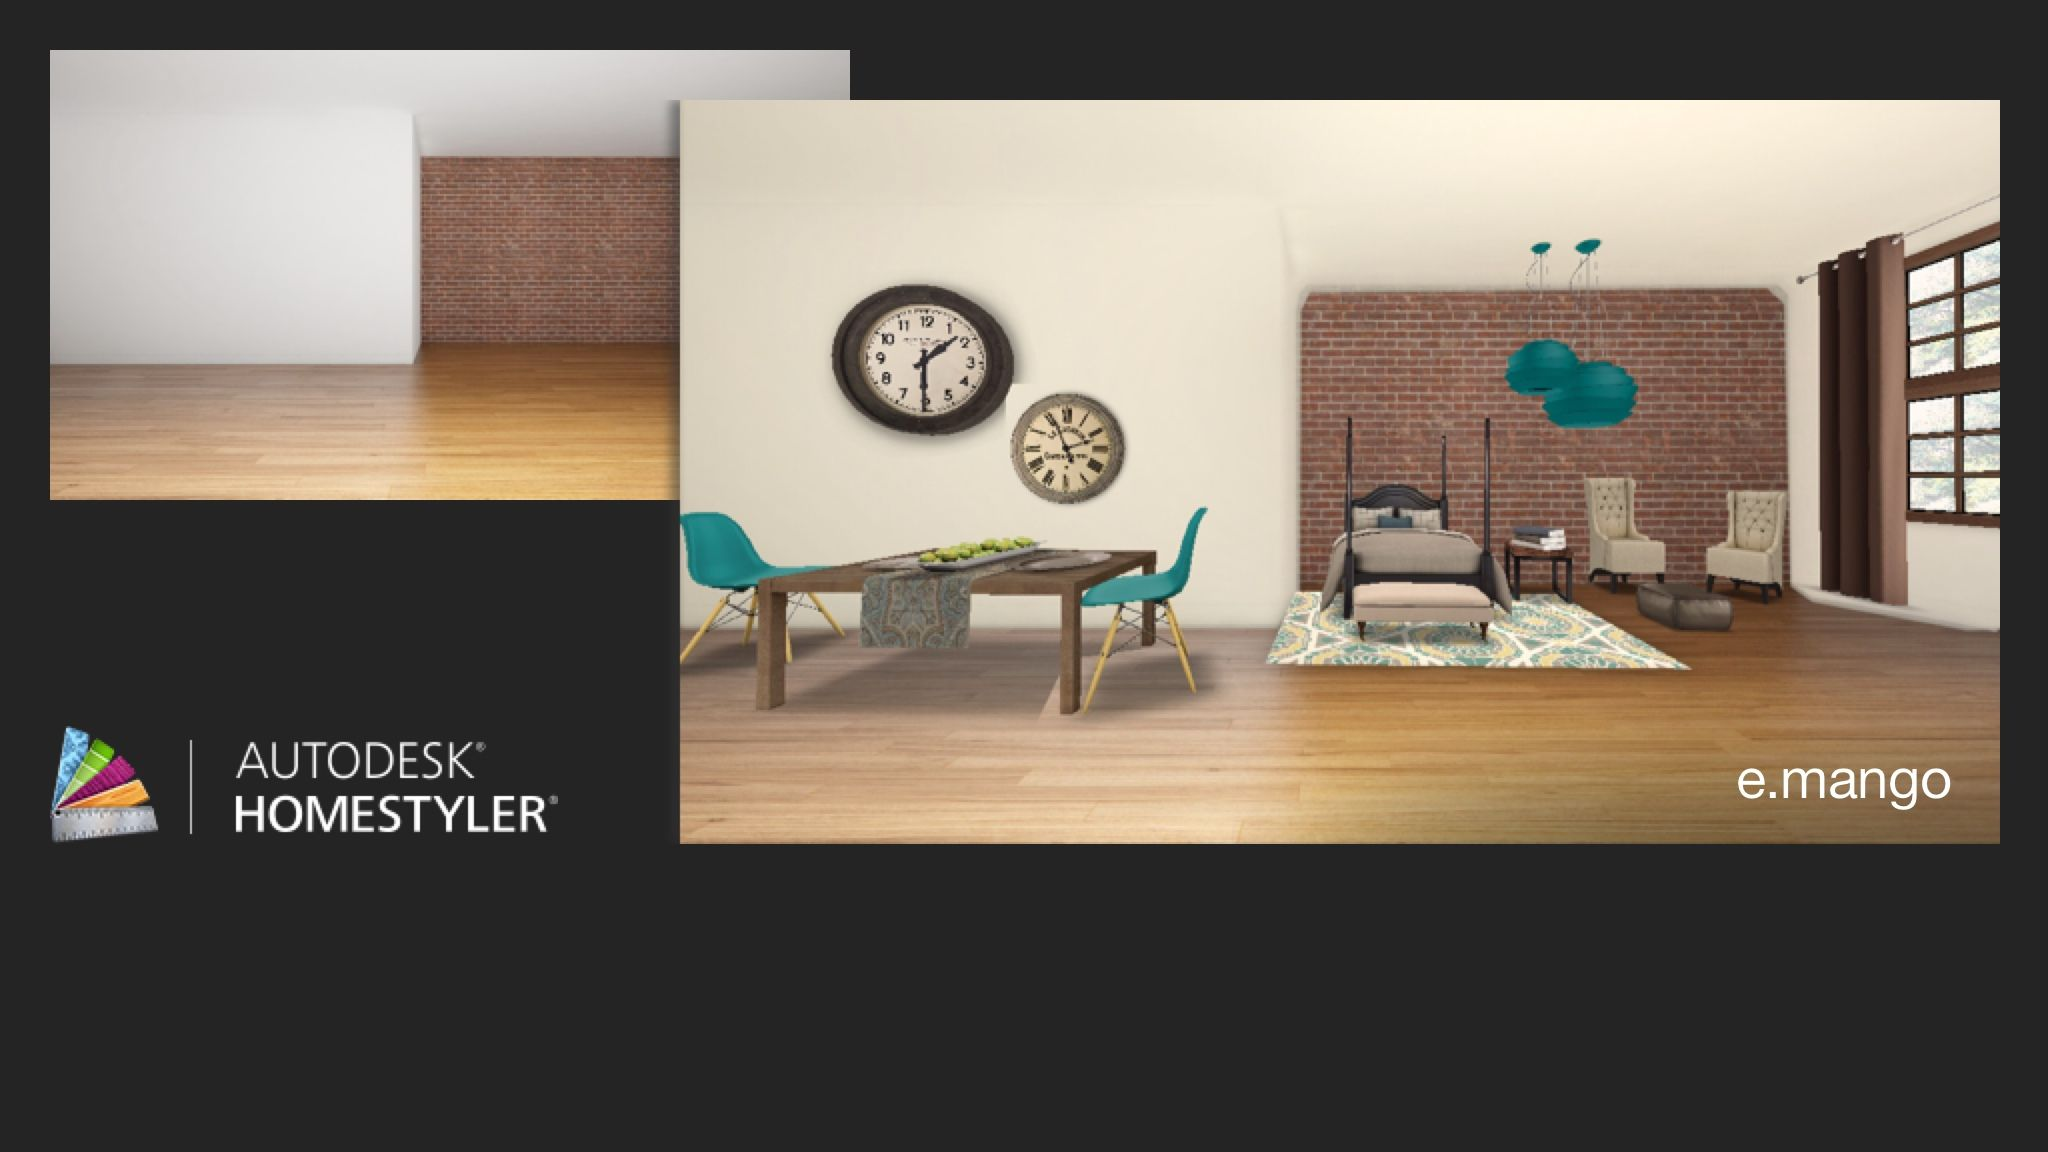 Living Room Design App Amazing I Made This Apartment On A Game Called Home Stylerit Is The Best Inspiration Design